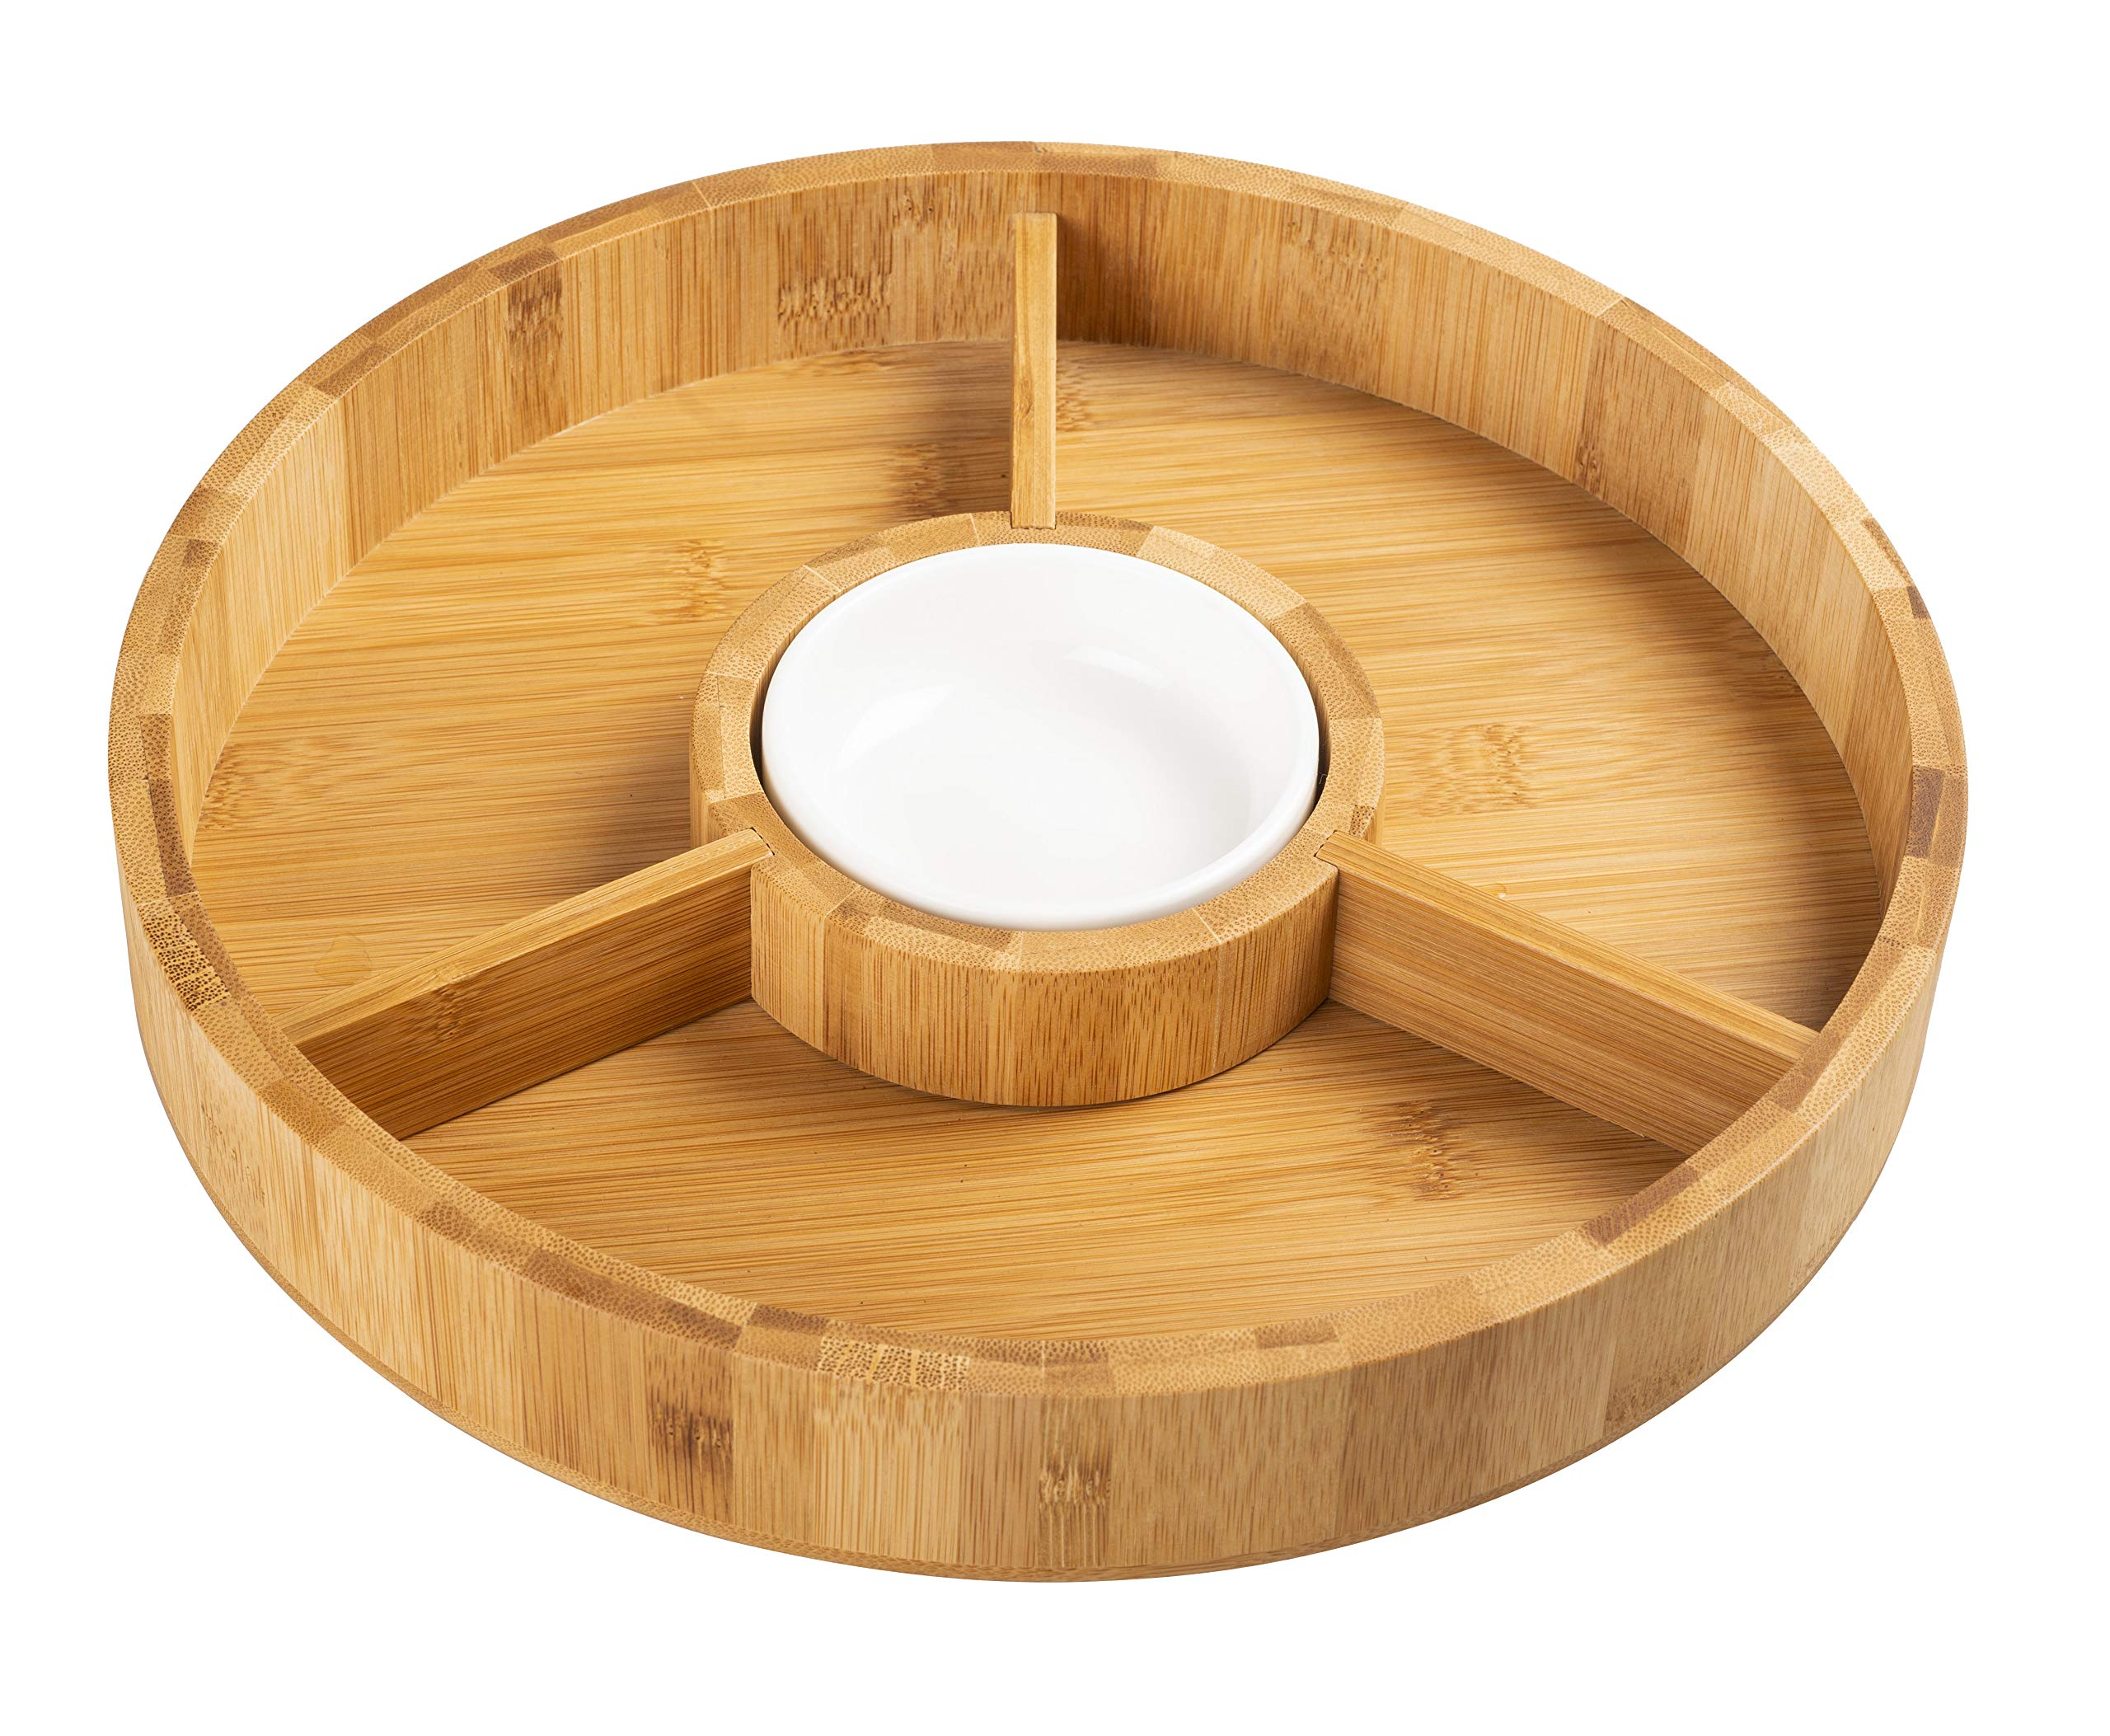 Strova 12 Inch Organic Bamboo Chip and Dip Serving Platter Set w/Ceramic Dip Bowl | Round Chips Bowl Appetizer Server for Event Use | Salsa, Taco Chip, Guacamole, and Snacks Serving Tray